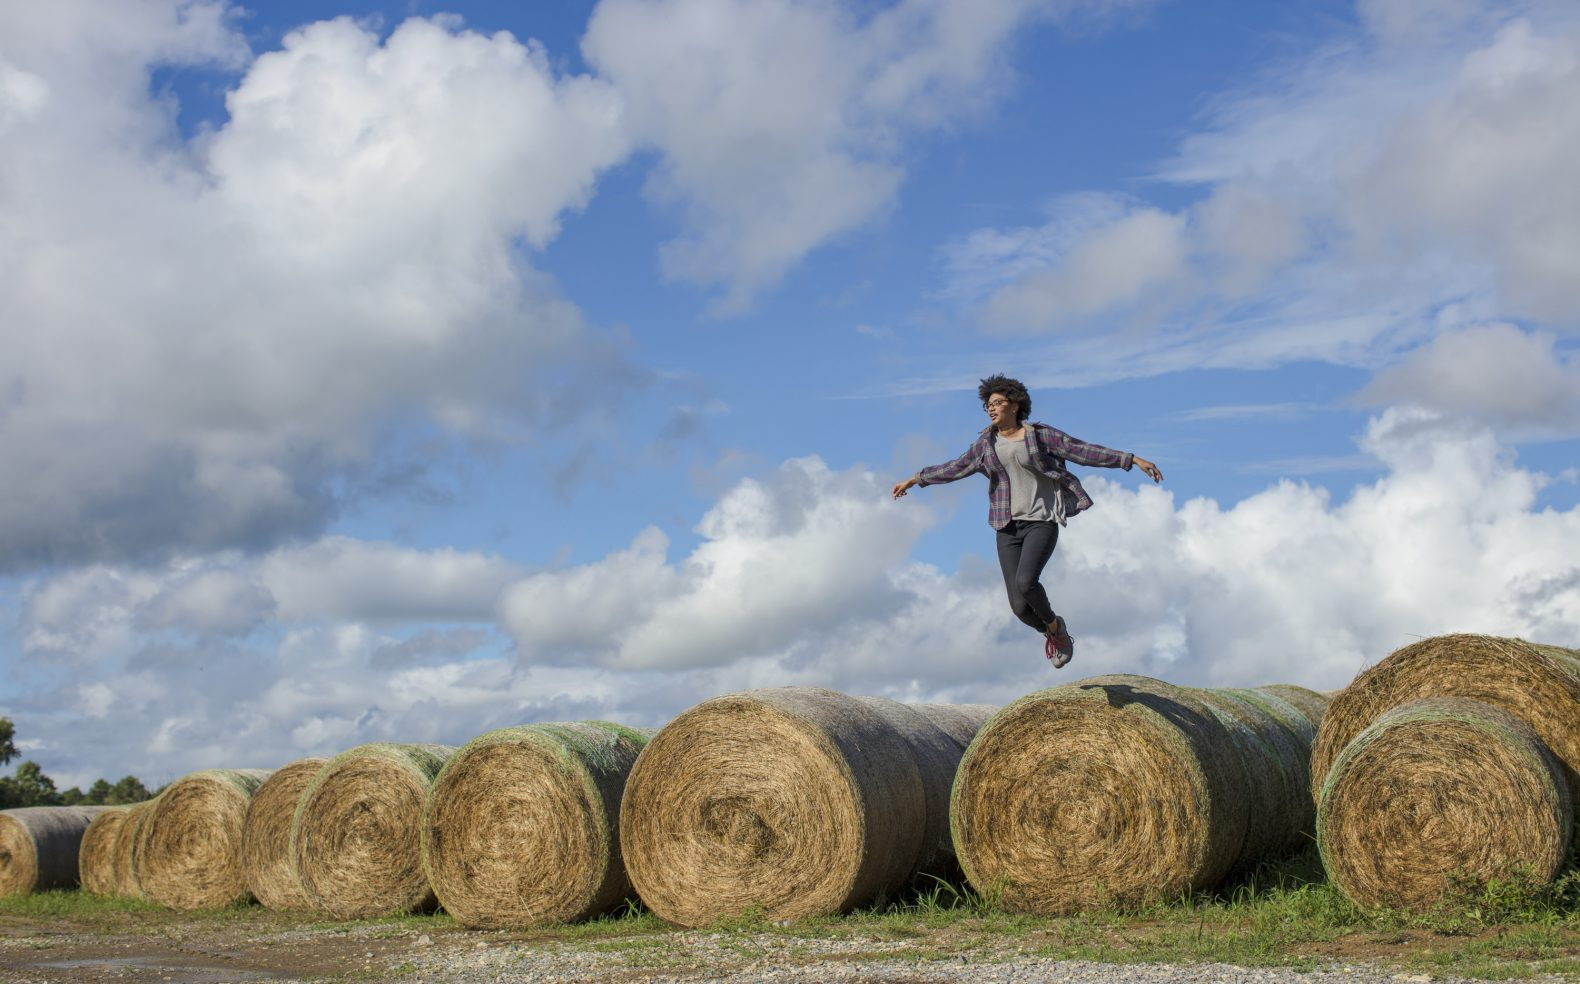 A young woman wearing jeans and a flannel is airborne as she jumps off a row of hay barrels under a blue sky.